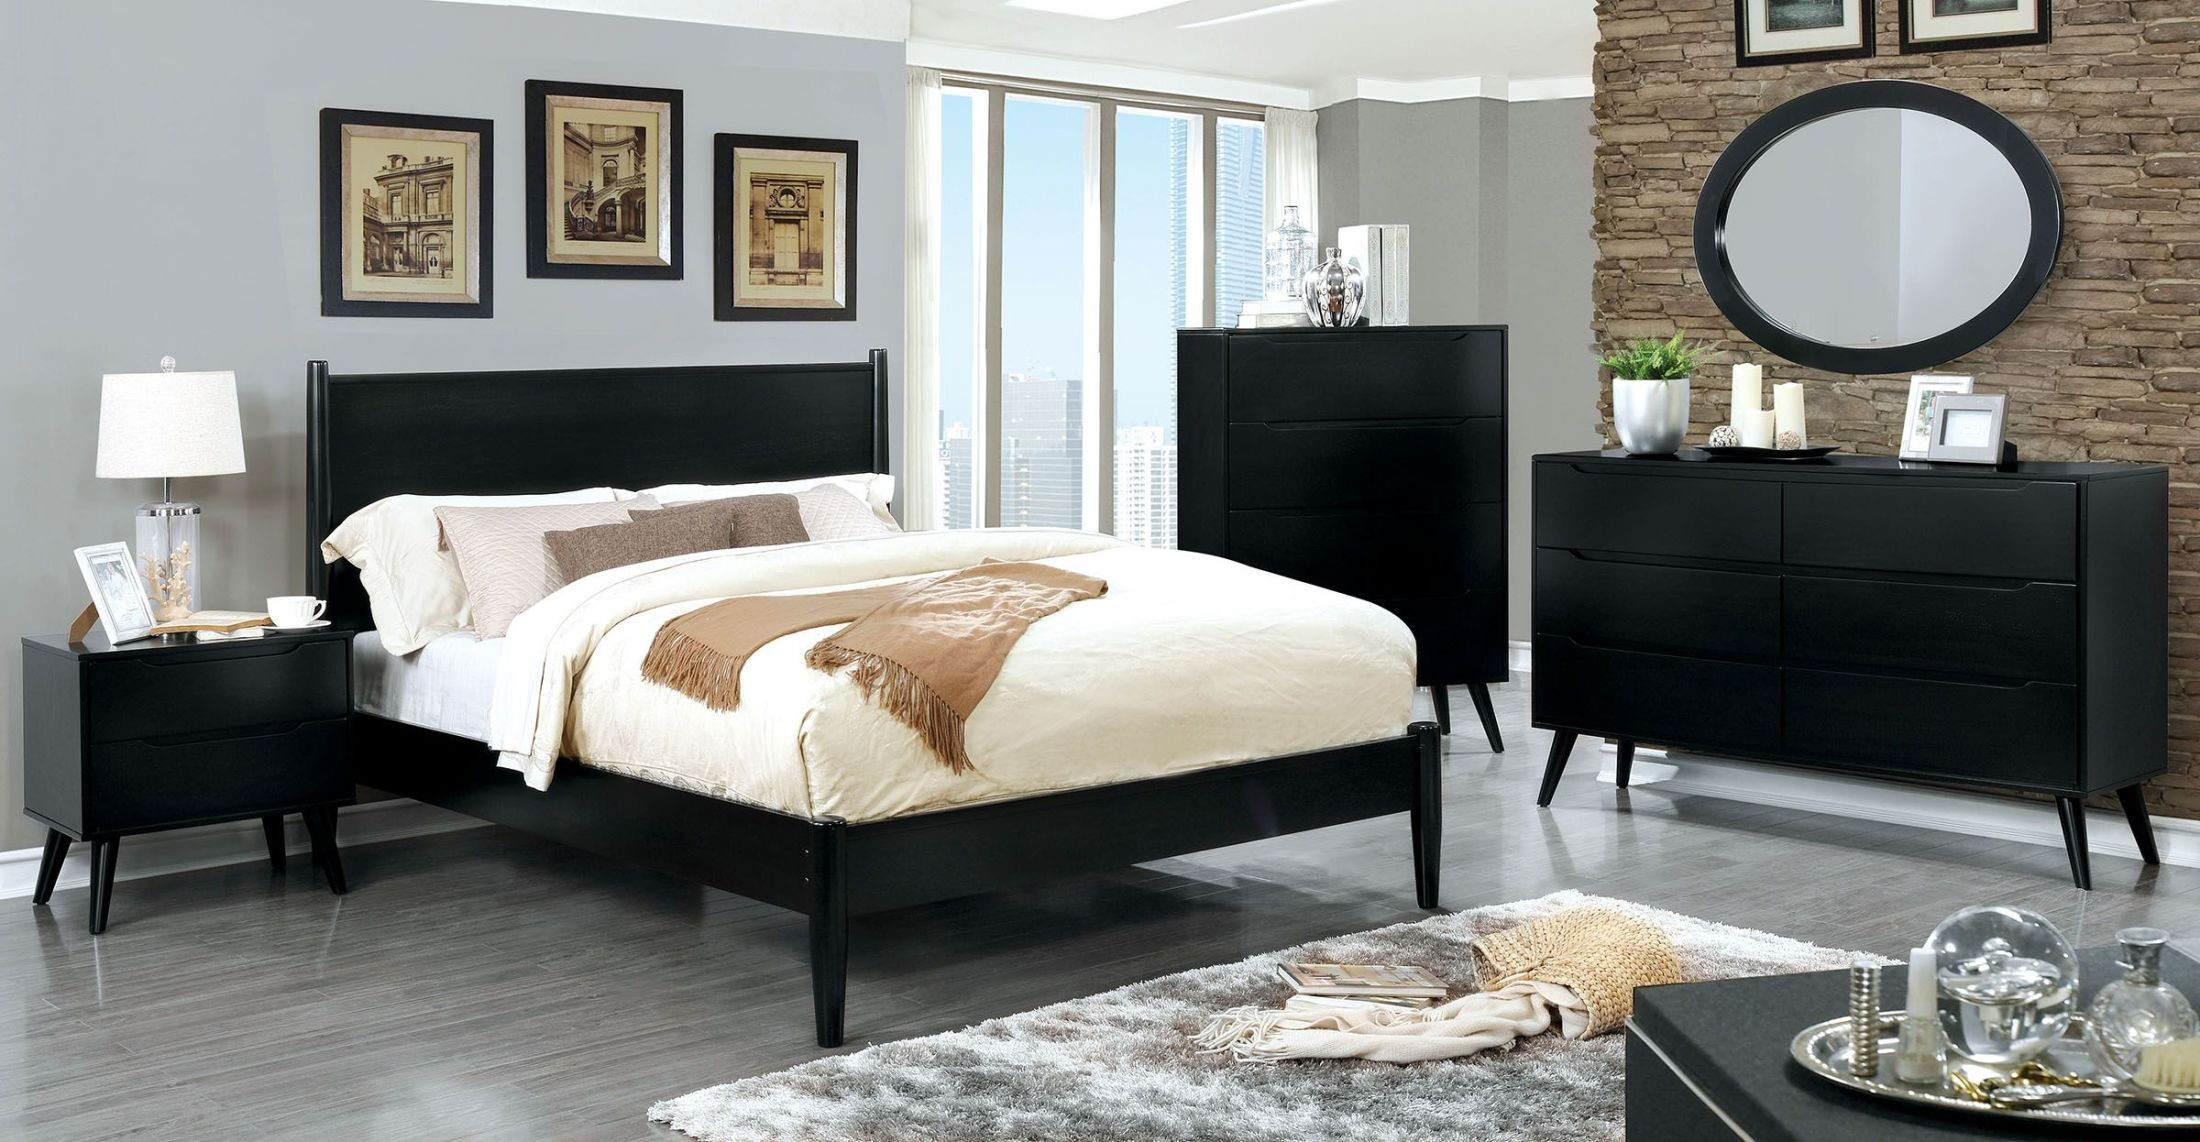 Contemporary Bedroom Set London Black By Acme Furniture: Lennart II Black Panel Bedroom Set From Furniture Of